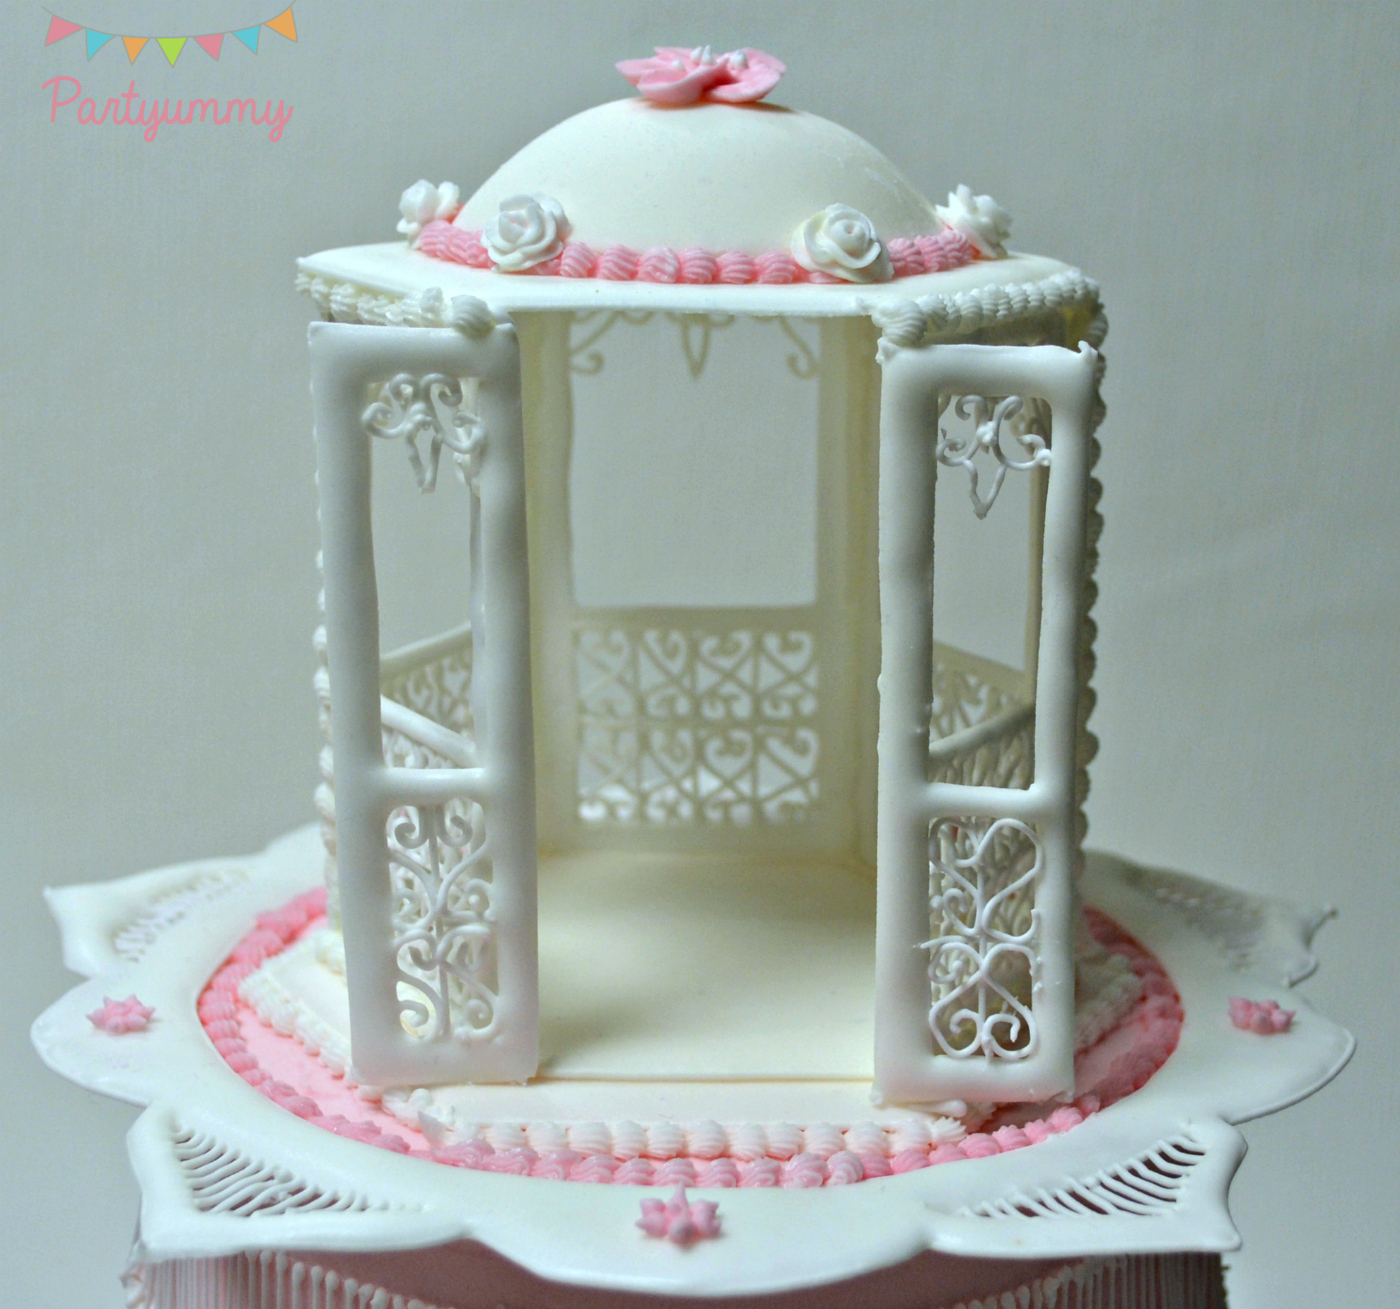 kiosque-maison-glacage-royal-icing-gazebo-wedding